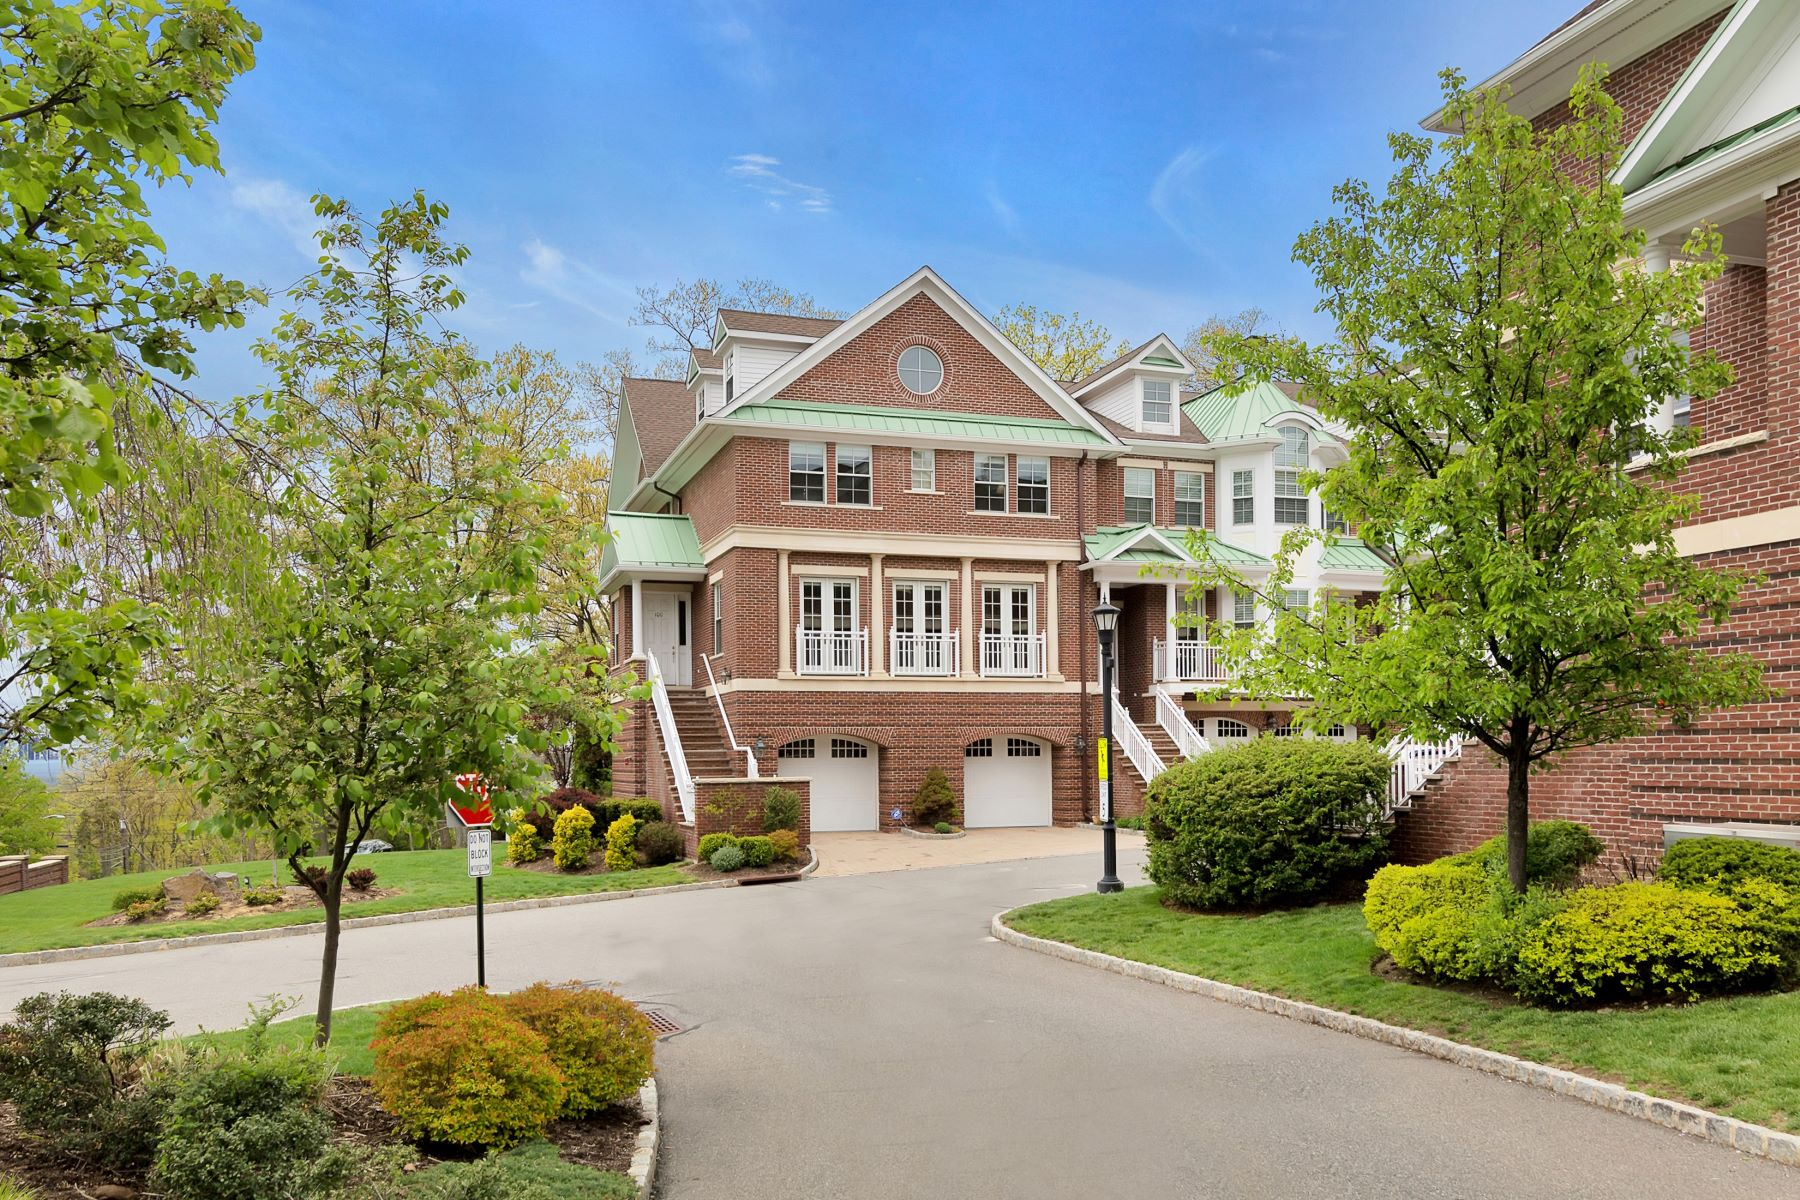 Townhouse for Sale at Luxury Townhouse 100 Heights Lane, Tenafly, New Jersey, 07670 United States